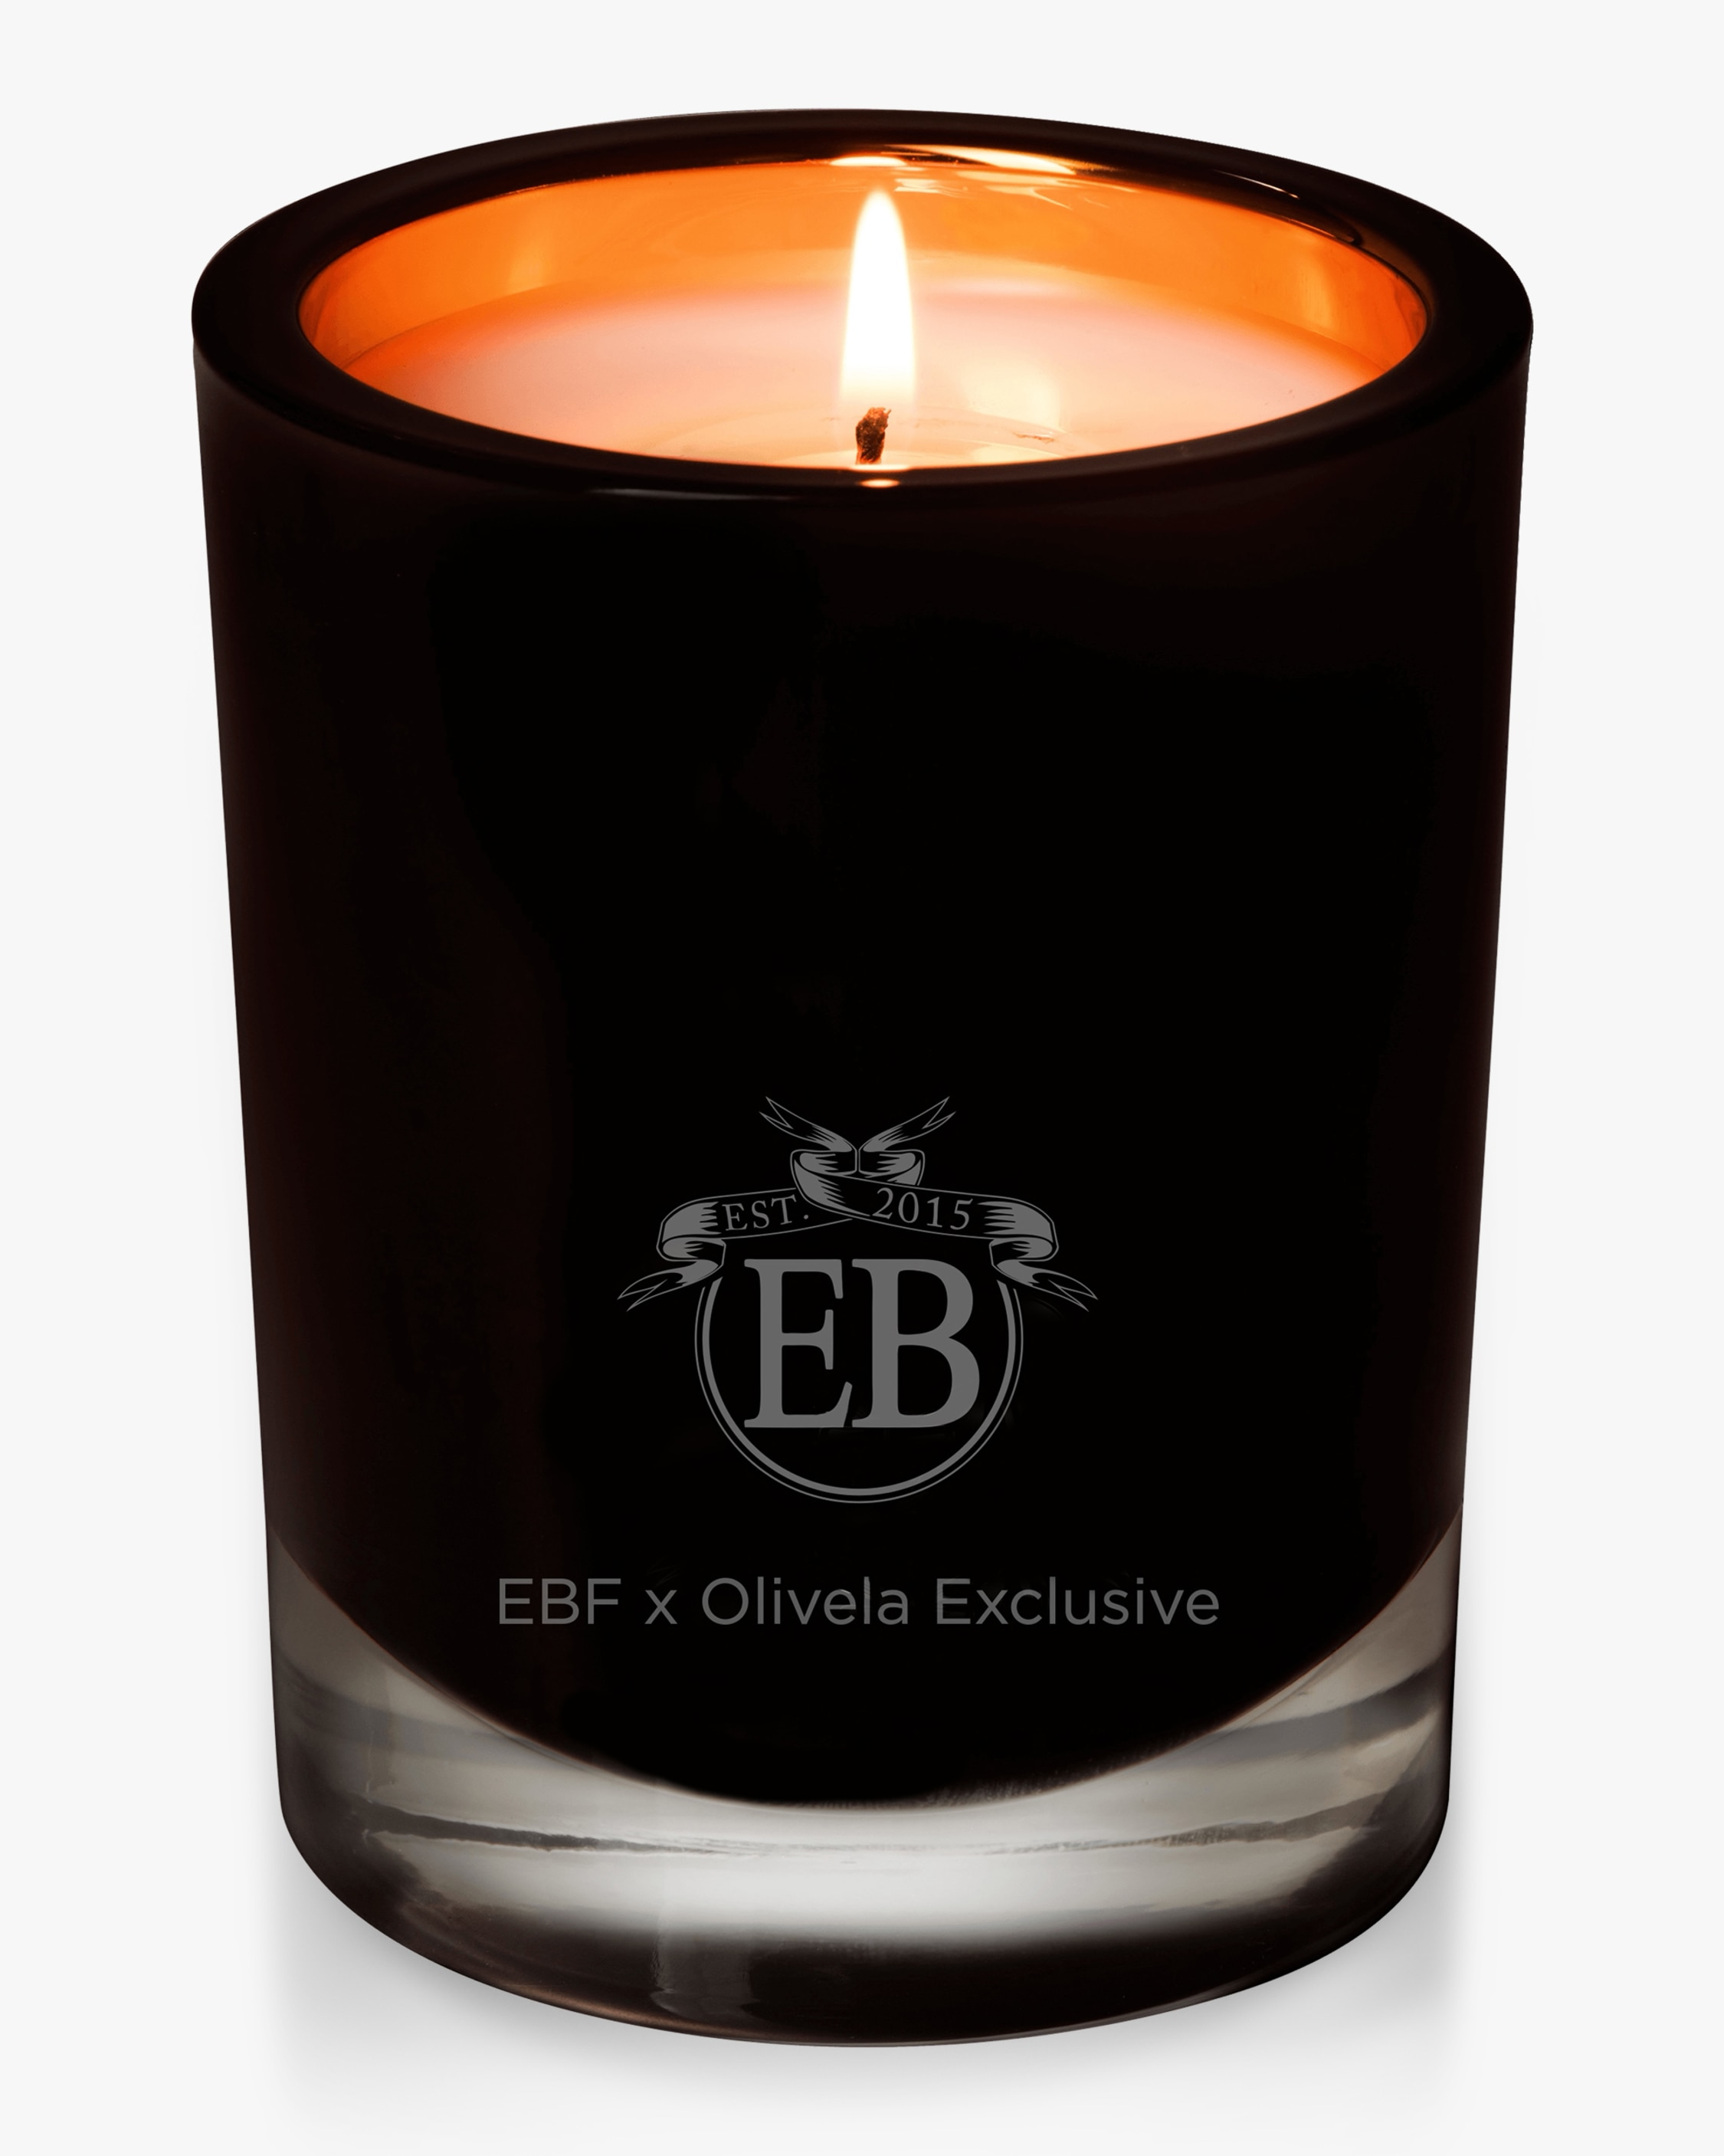 Eric Buterbaugh Los Angeles Iris Flower of Hope Candle 2